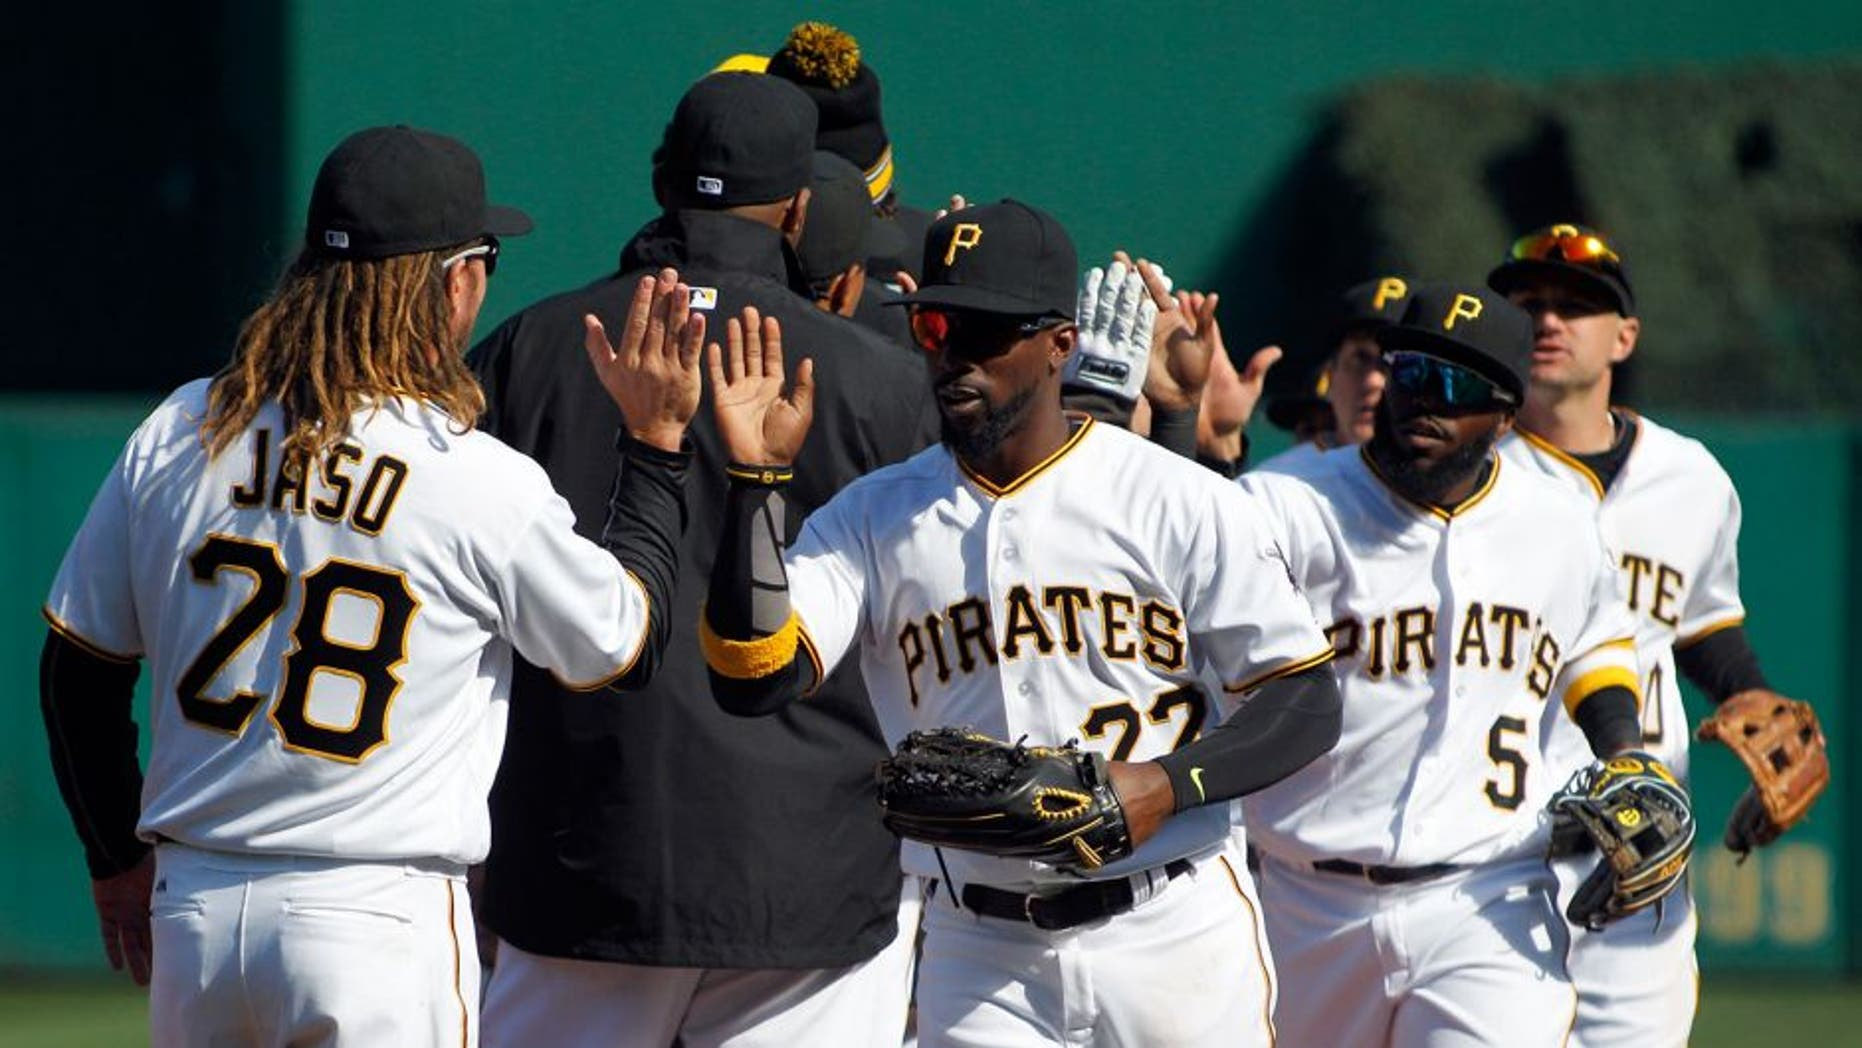 PITTSBURGH, PA - APRIL 03: Andrew McCutchen #22 of the Pittsburgh Pirates celebrates with teammates after defeating the St. Louis Cardinals 4-1 on opening day at PNC Park on April 3, 2016 in Pittsburgh, Pennsylvania. (Photo by Justin K. Aller/Getty Images)